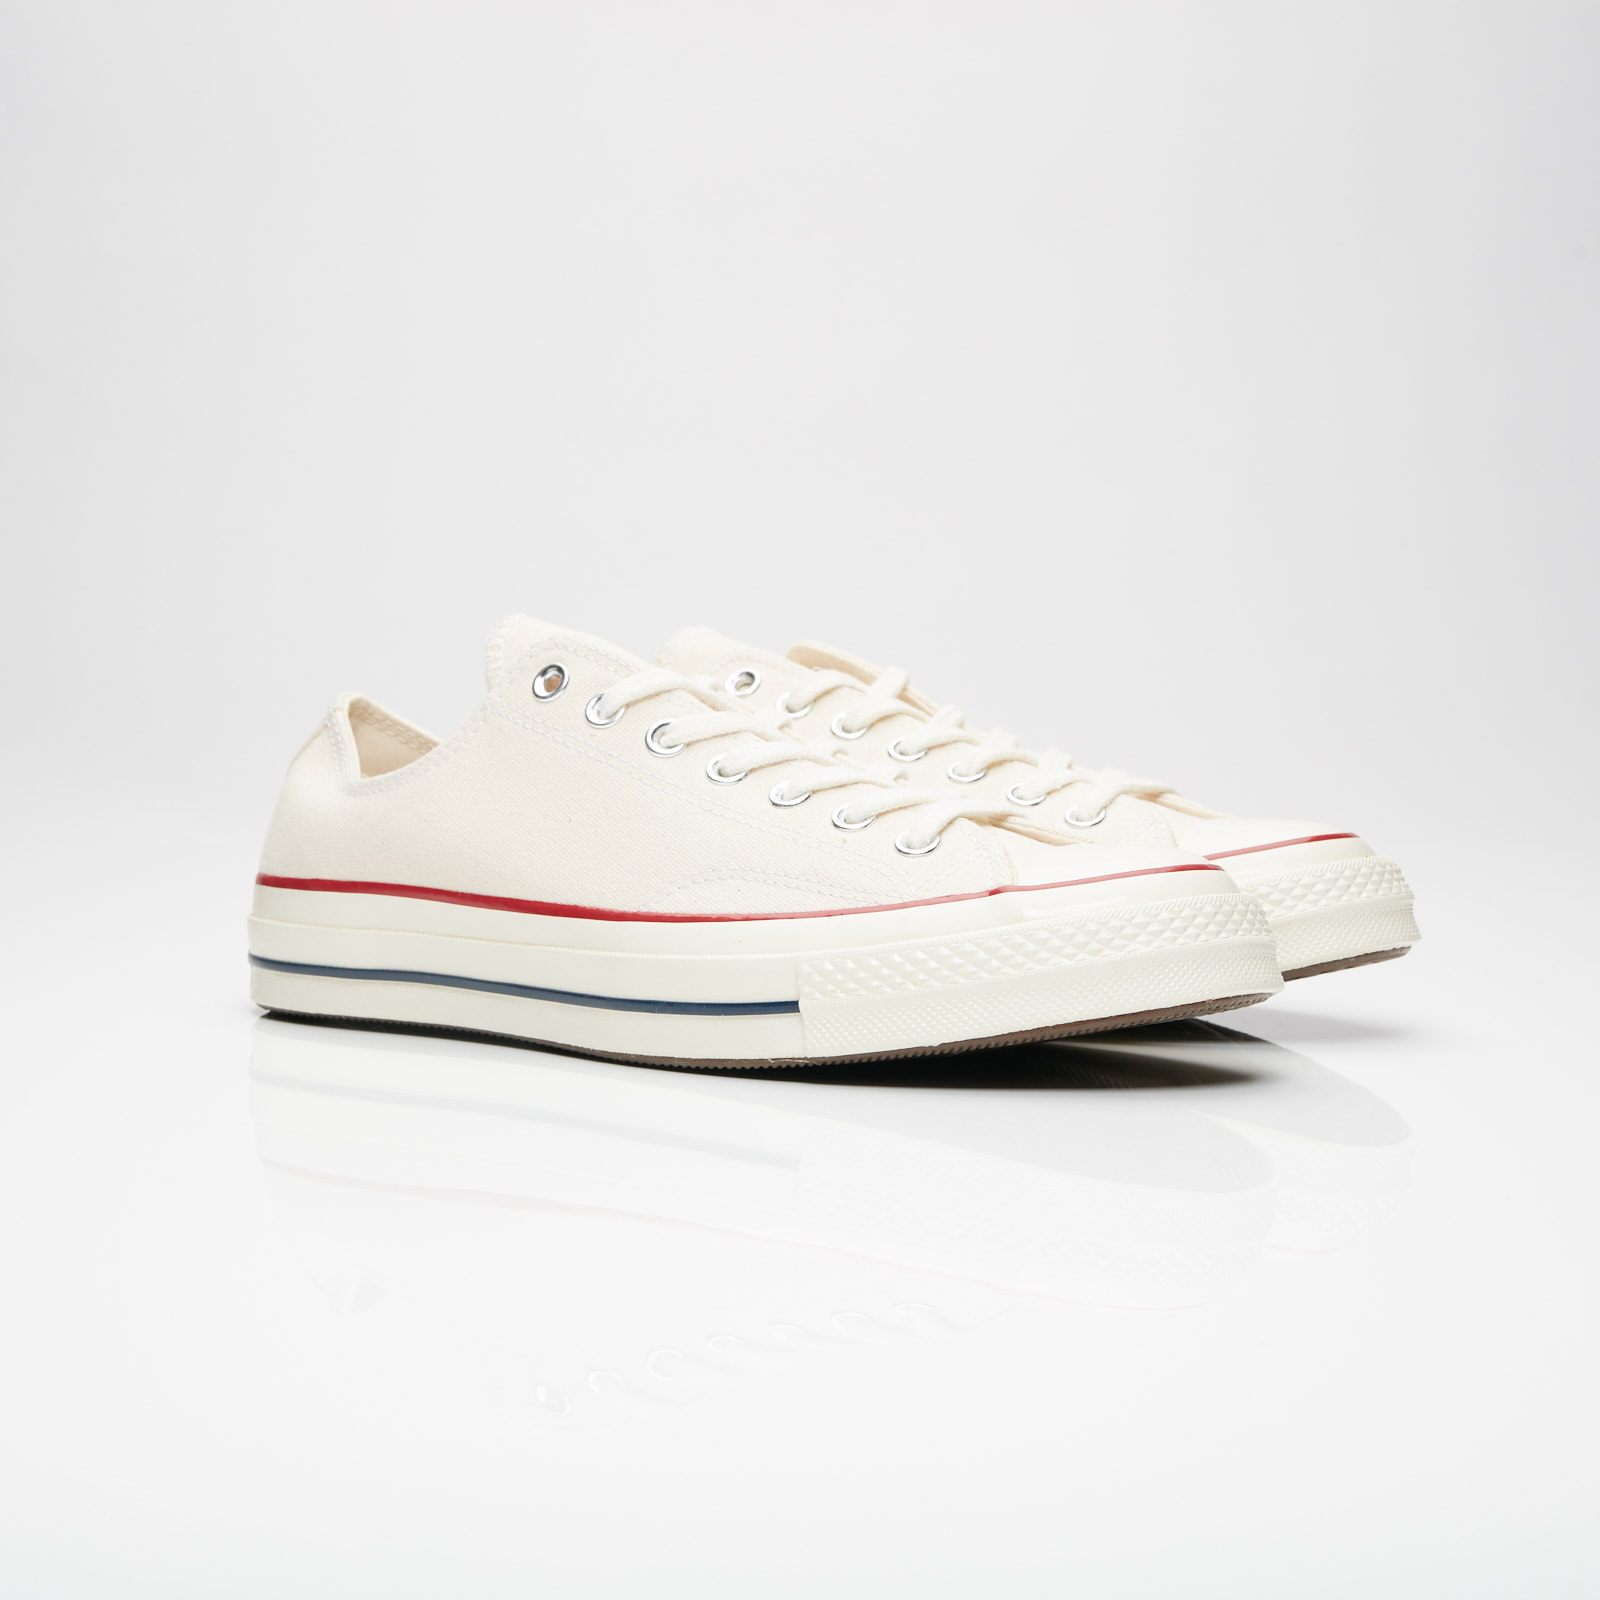 Converse Chuck Taylor 70 - Ox - 162062c - Sneakersnstuff  60f2aeeafd709